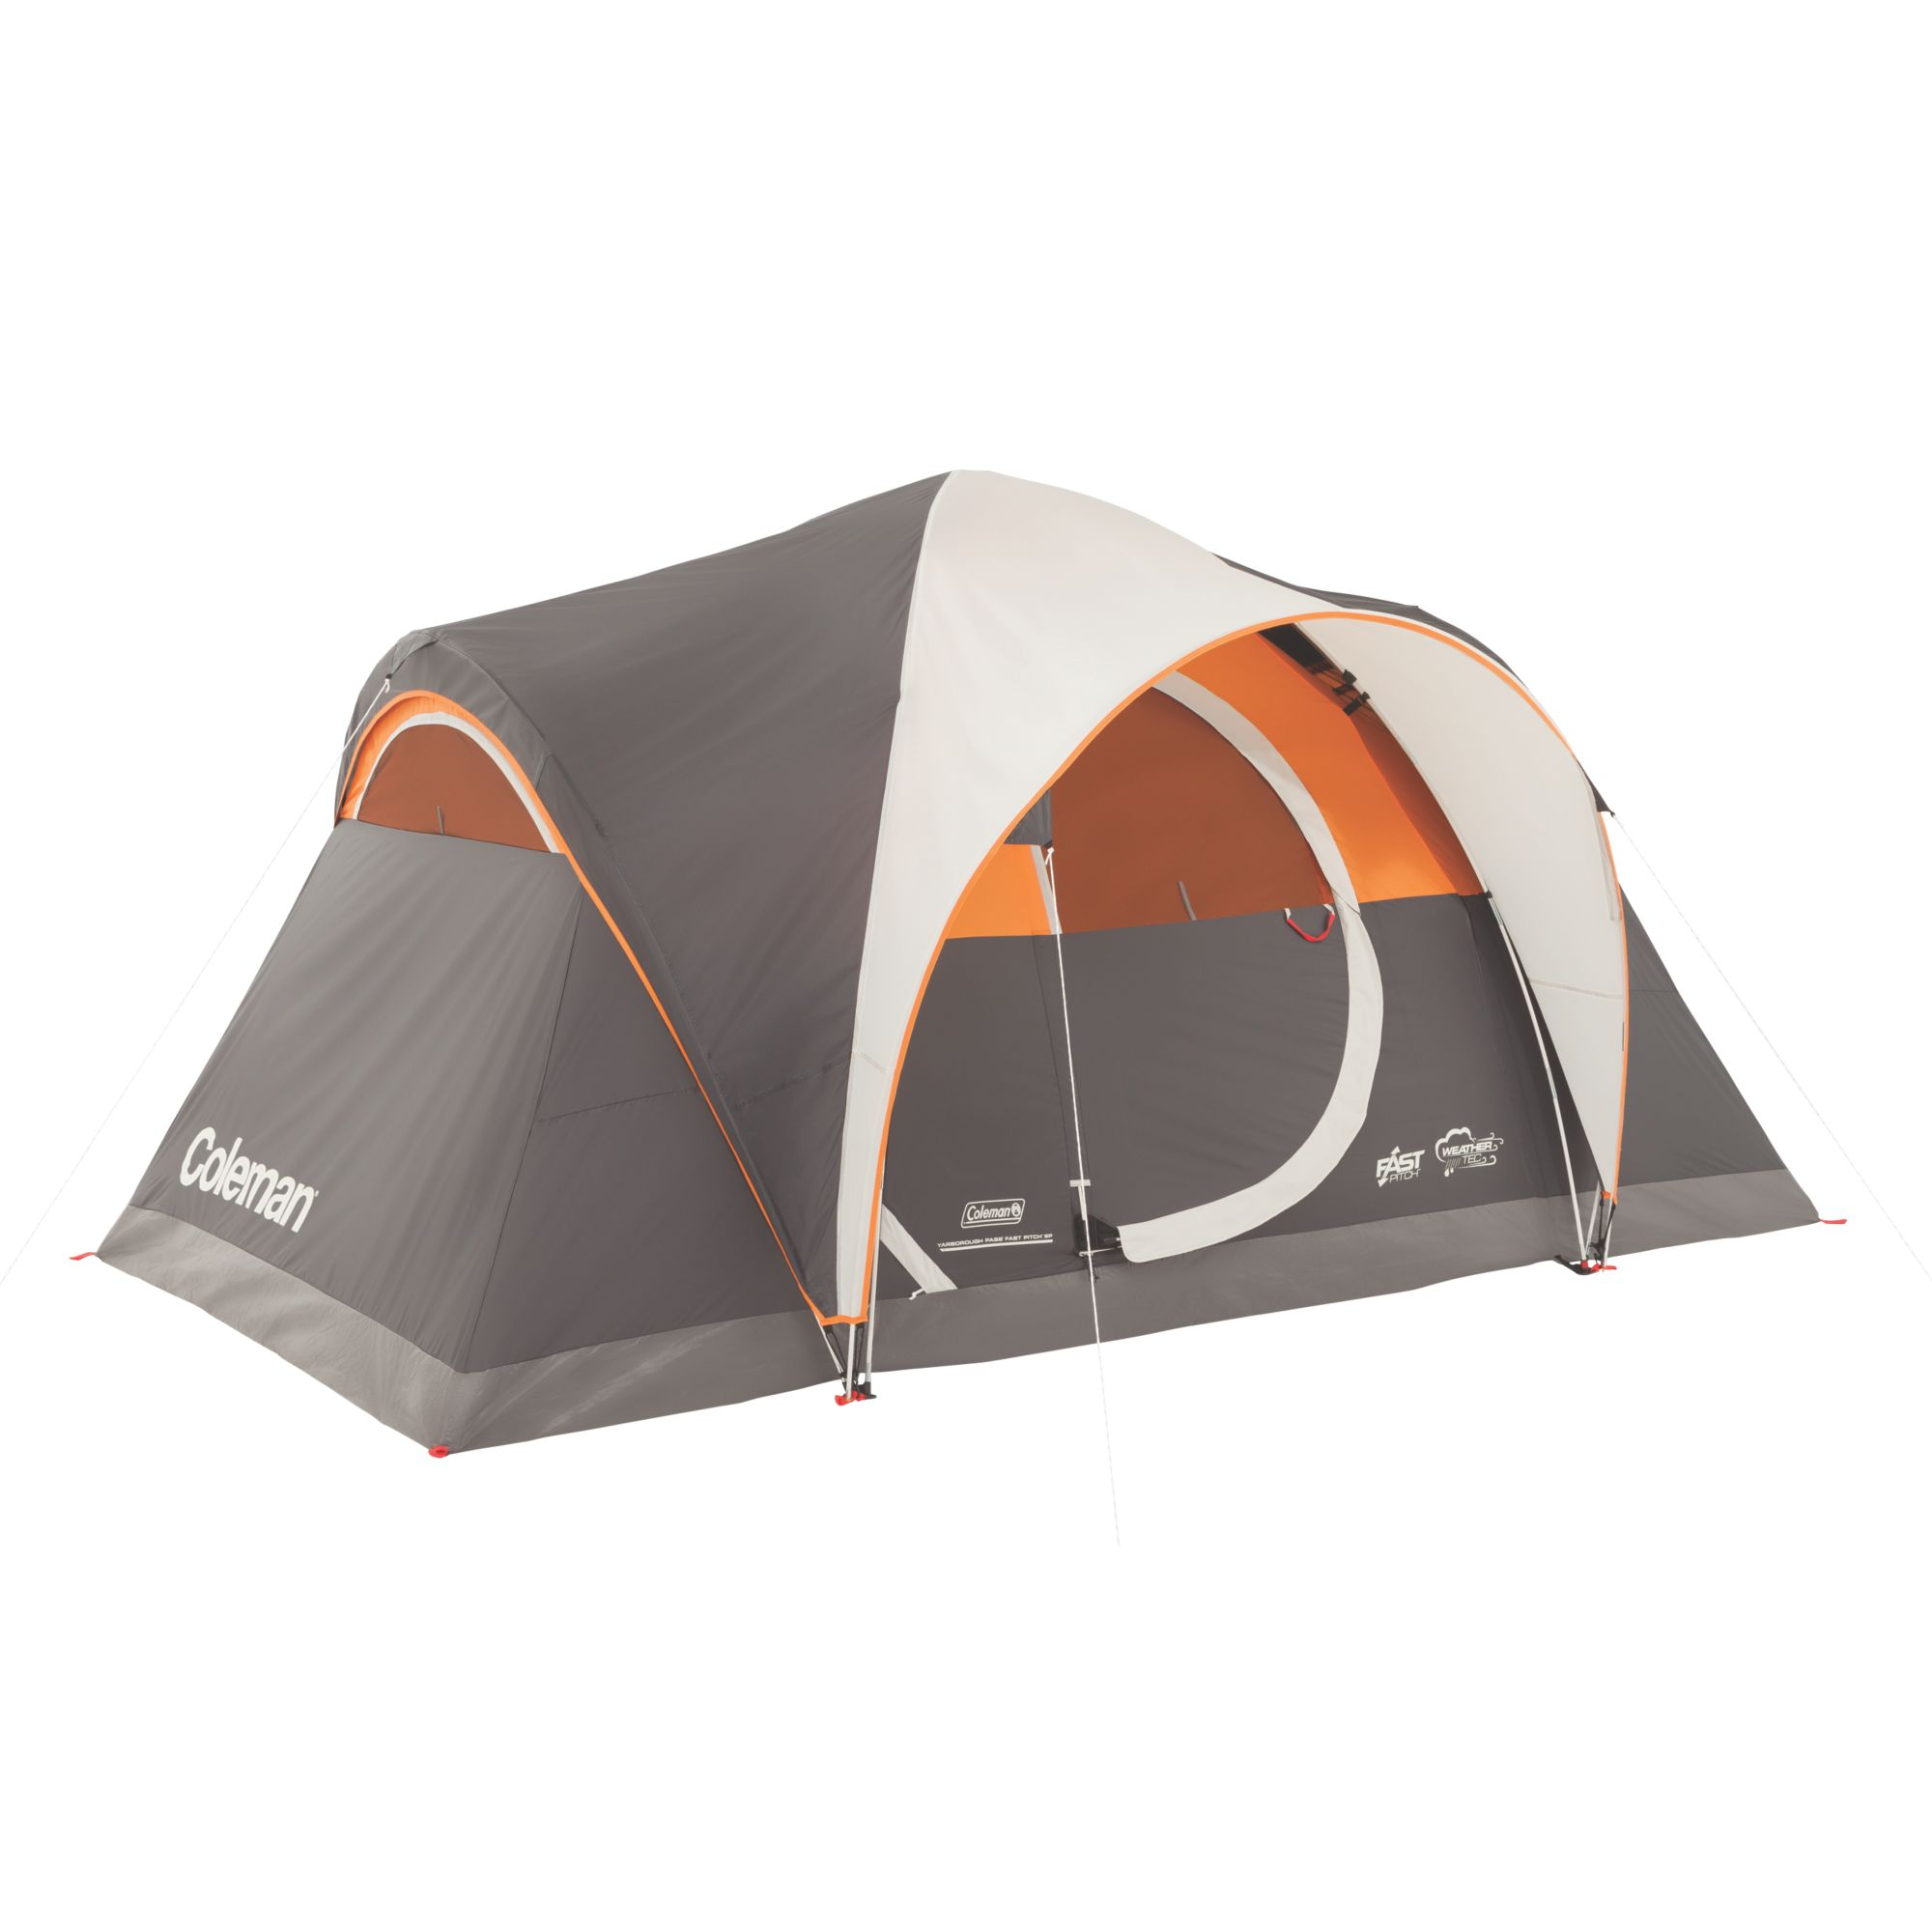 Yarborough pass fast pitch 6 person tent